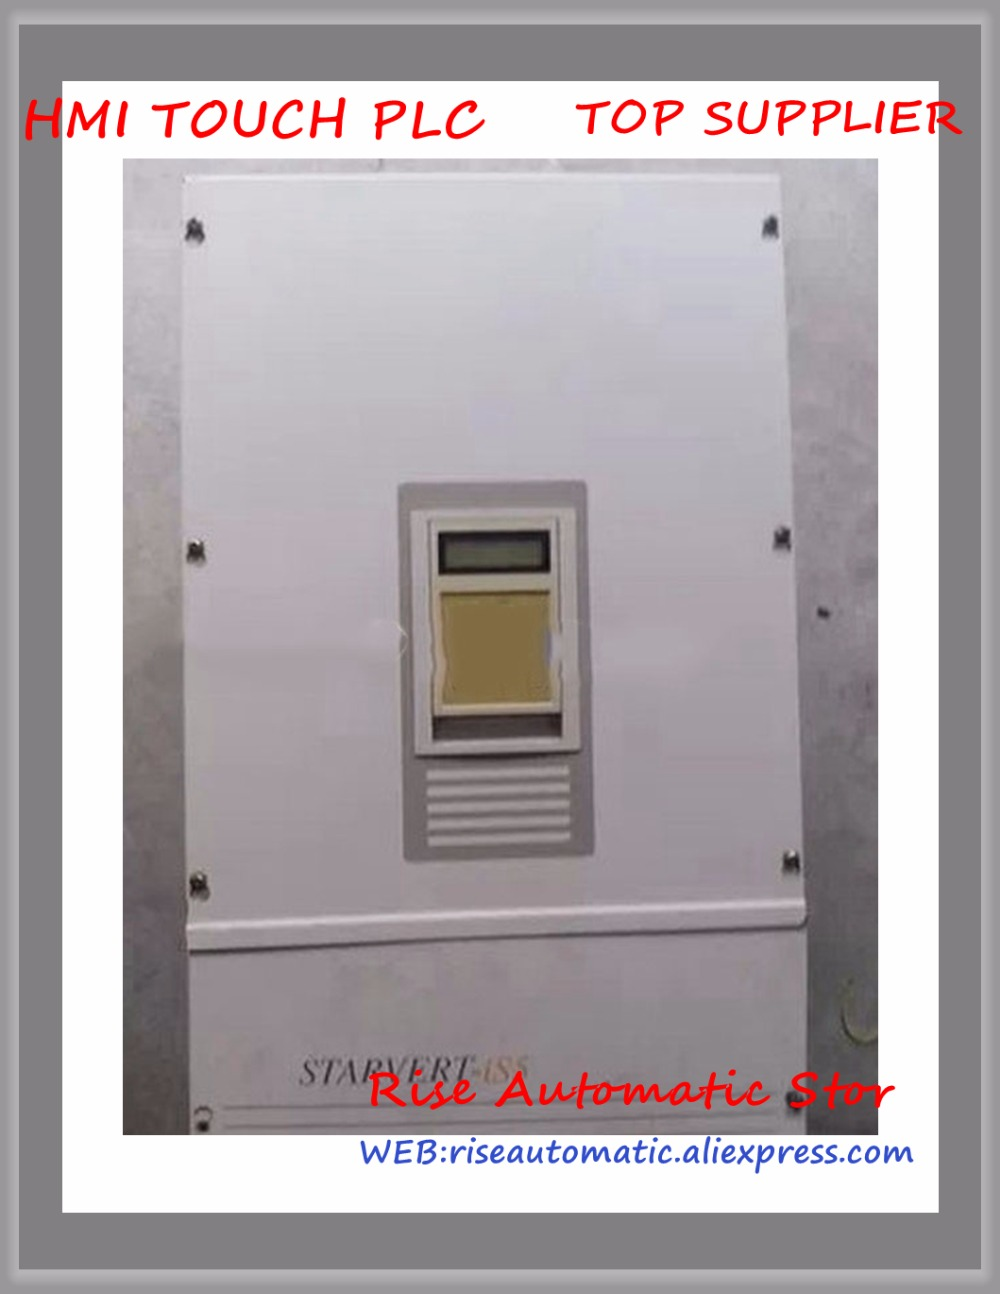 SV008iS5-4N nuovo 0.75KW 3 fase 380 V Inverter VFD frequenza AC driveSV008iS5-4N nuovo 0.75KW 3 fase 380 V Inverter VFD frequenza AC drive